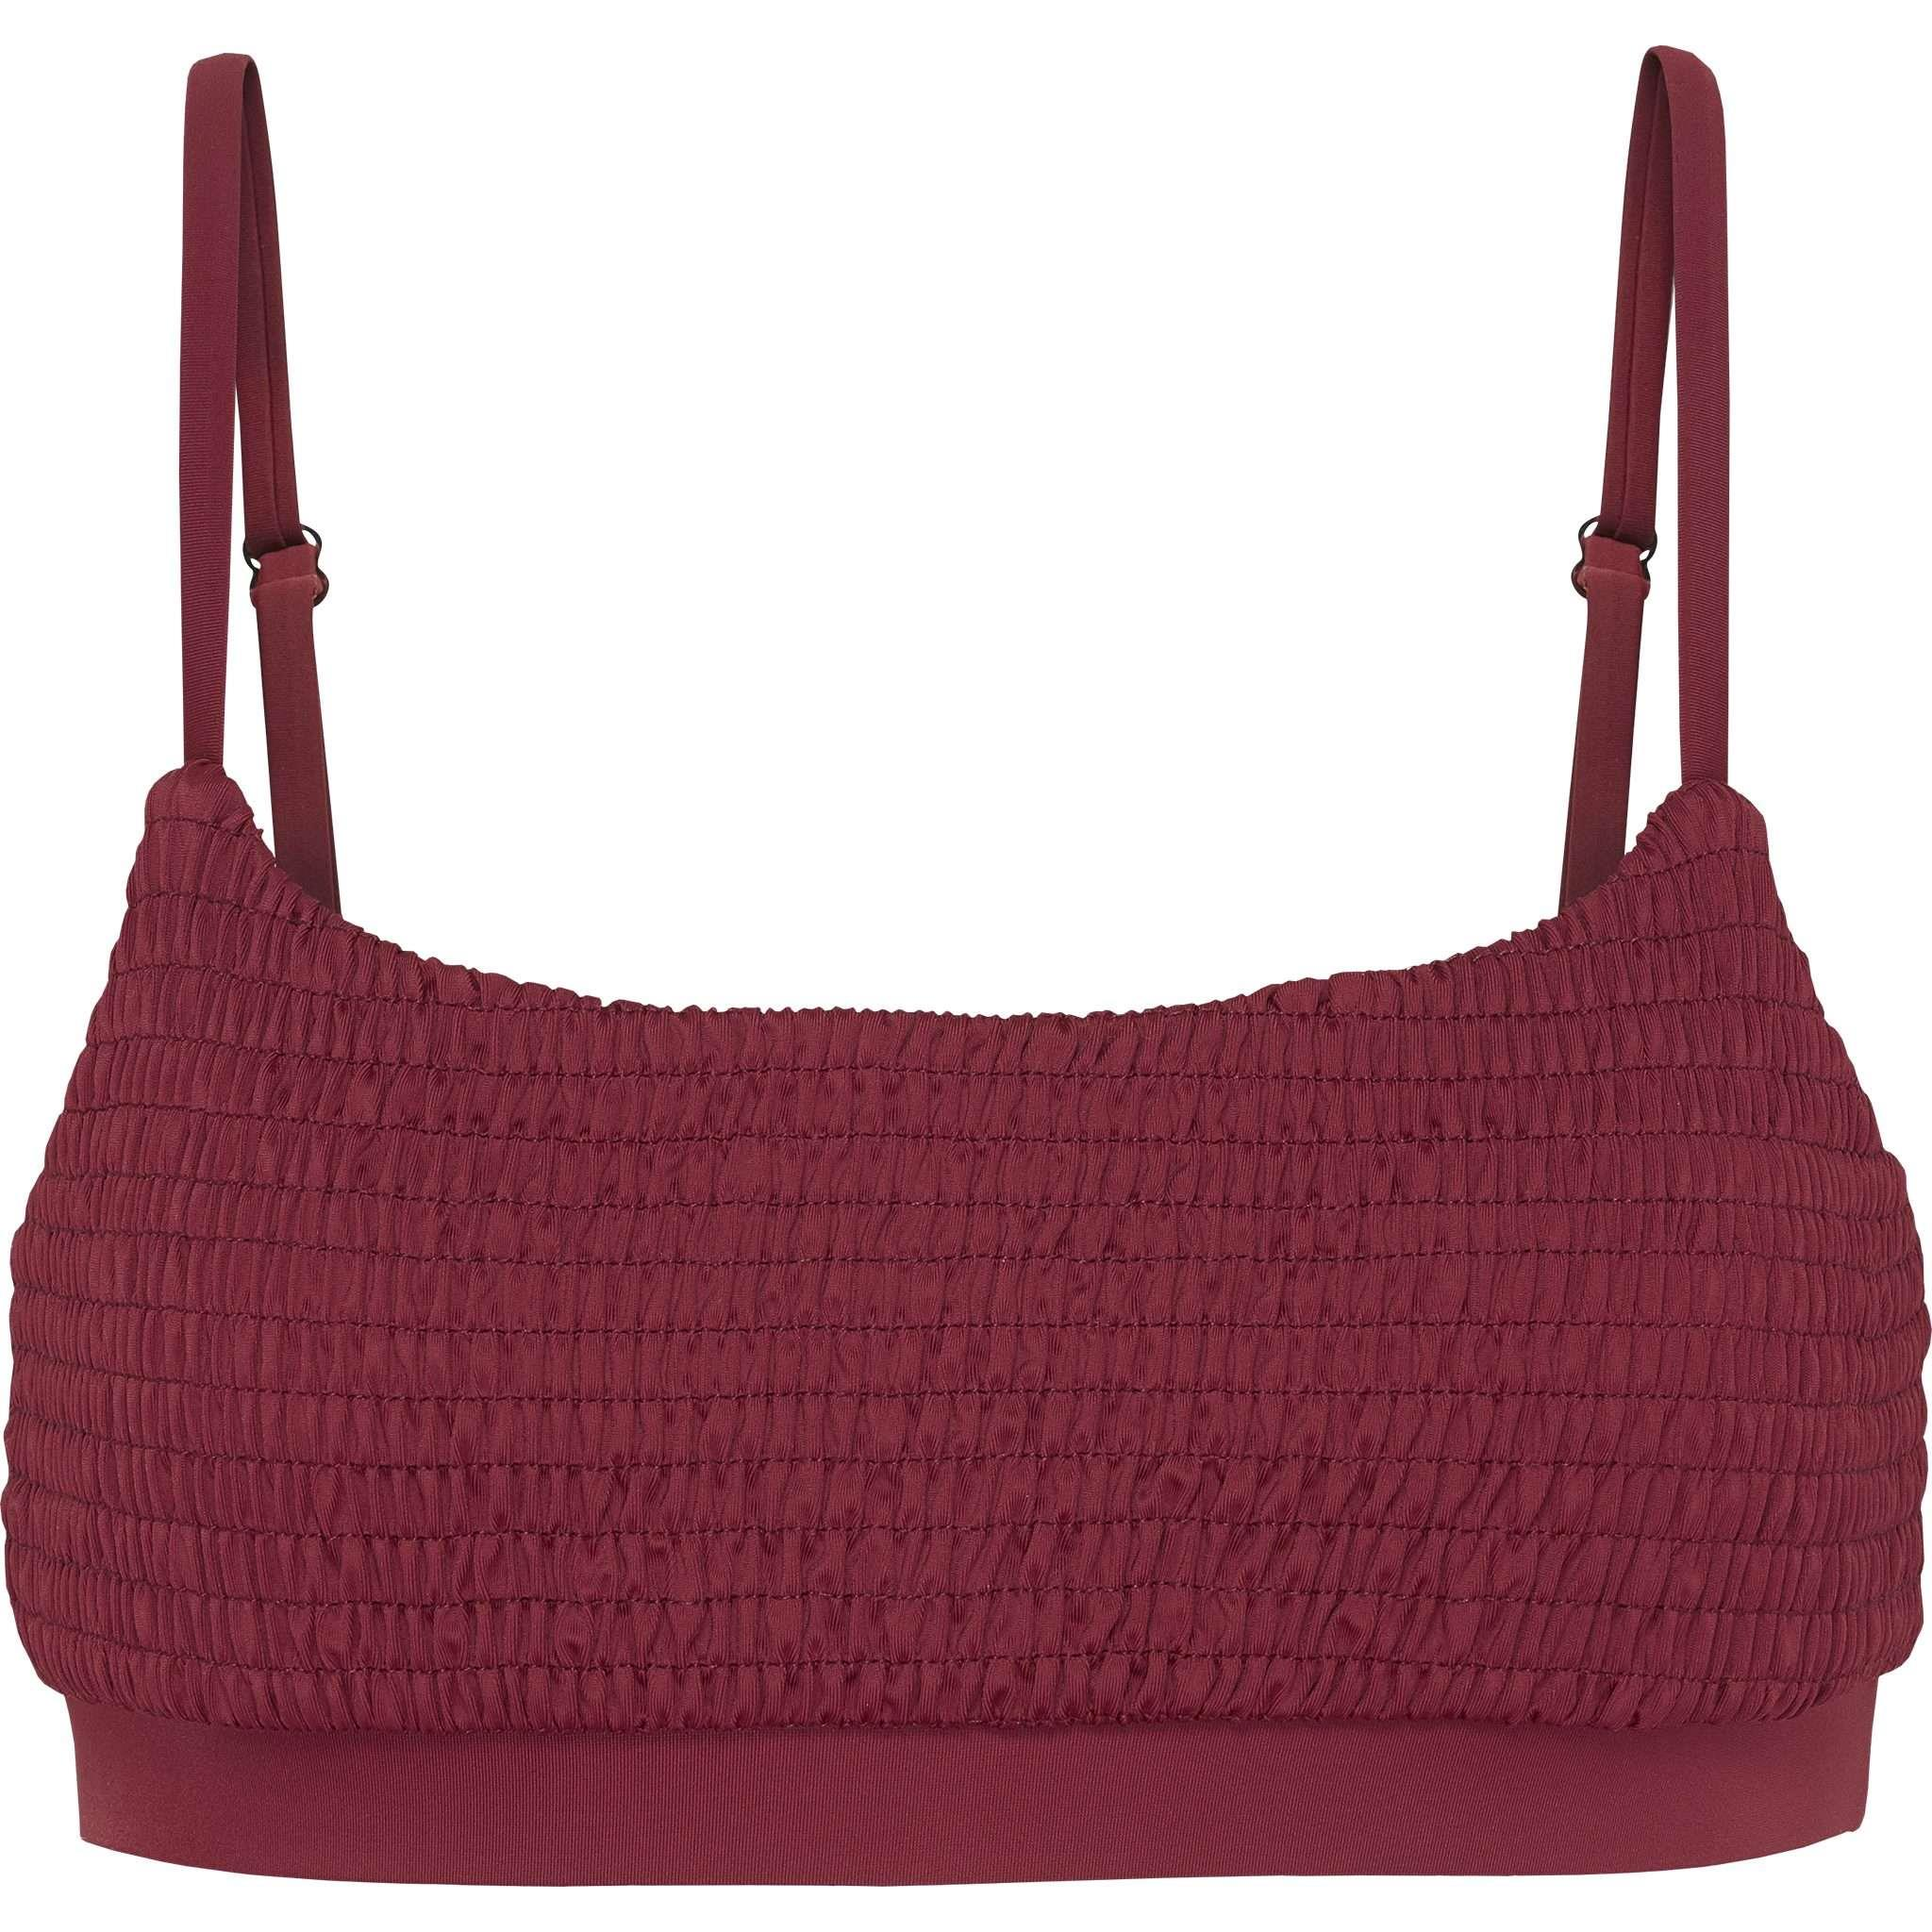 The Peitho Top | Burgundy Red